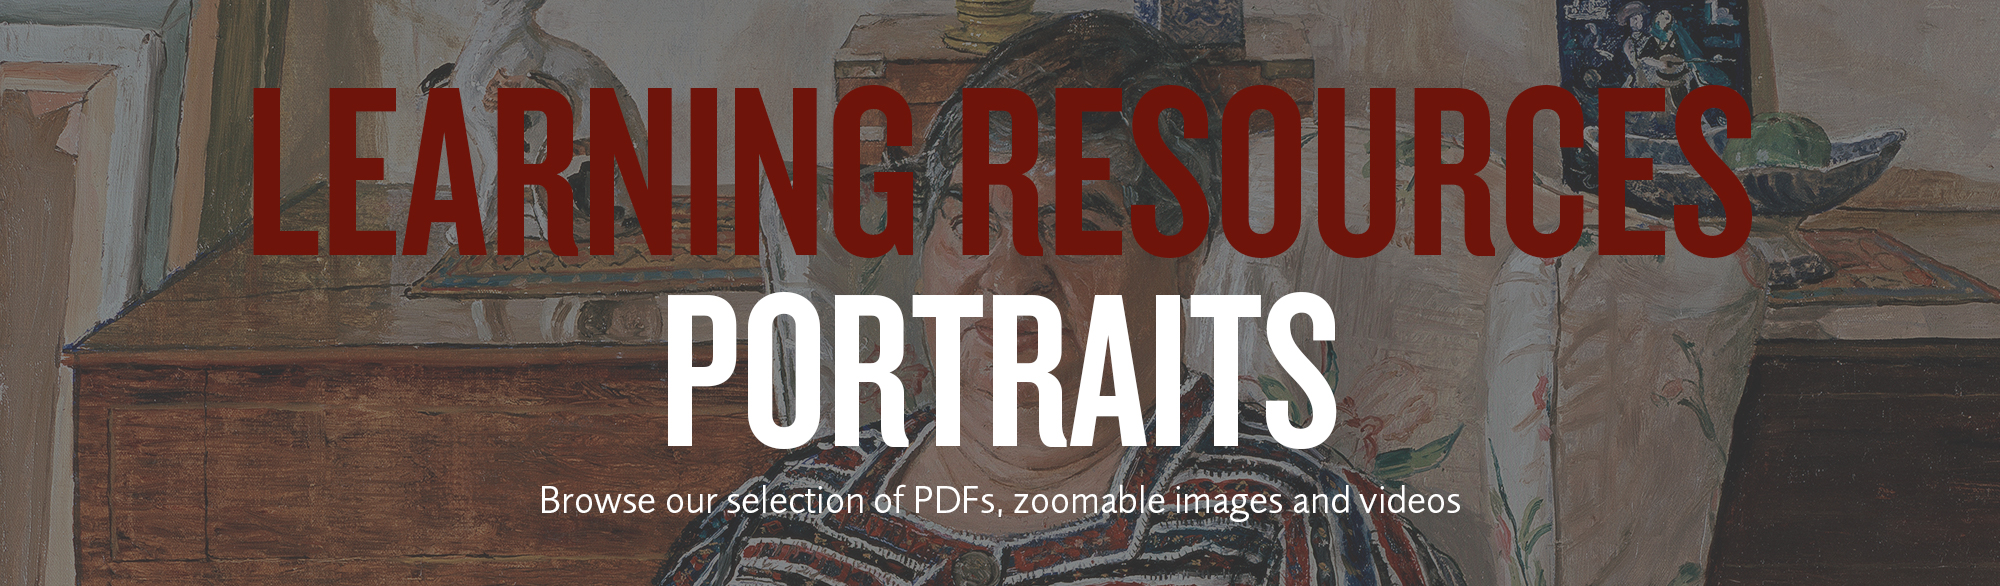 Learning resources Portraits